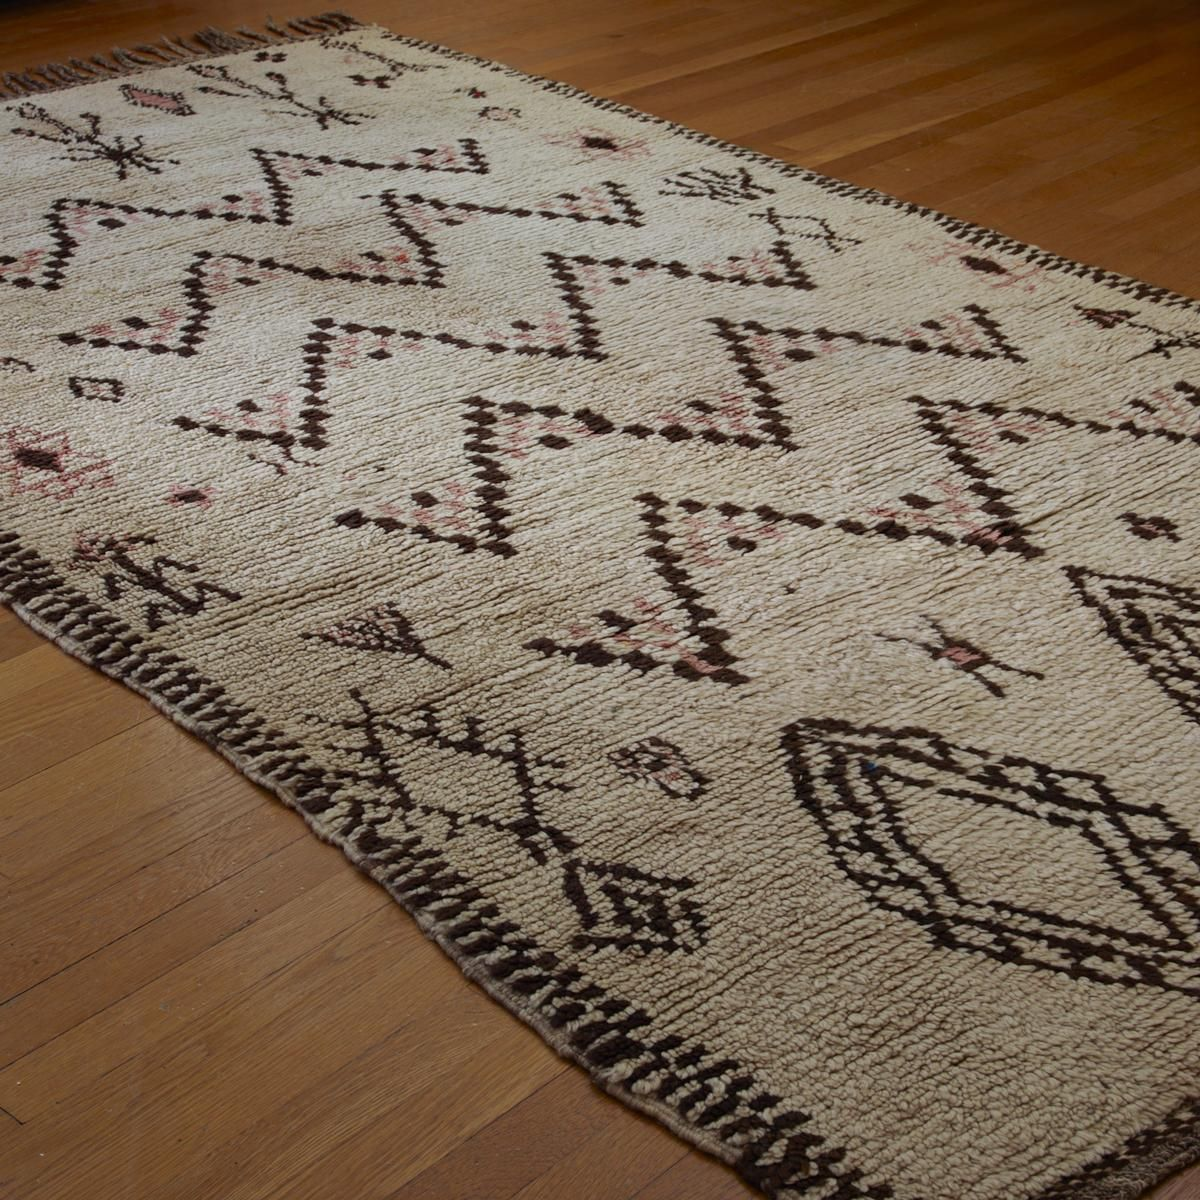 """Antique Moroccan Azilal Rug Named for a town deep in the Atlas Mountains of Morocco, the thick pile on this beautiful antique Moroccan rug is luxuriously soft and relaxing. With a touch of pink accenting cream and chocolate, this rug softly grounds any decor. (5'x9'2"""")"""